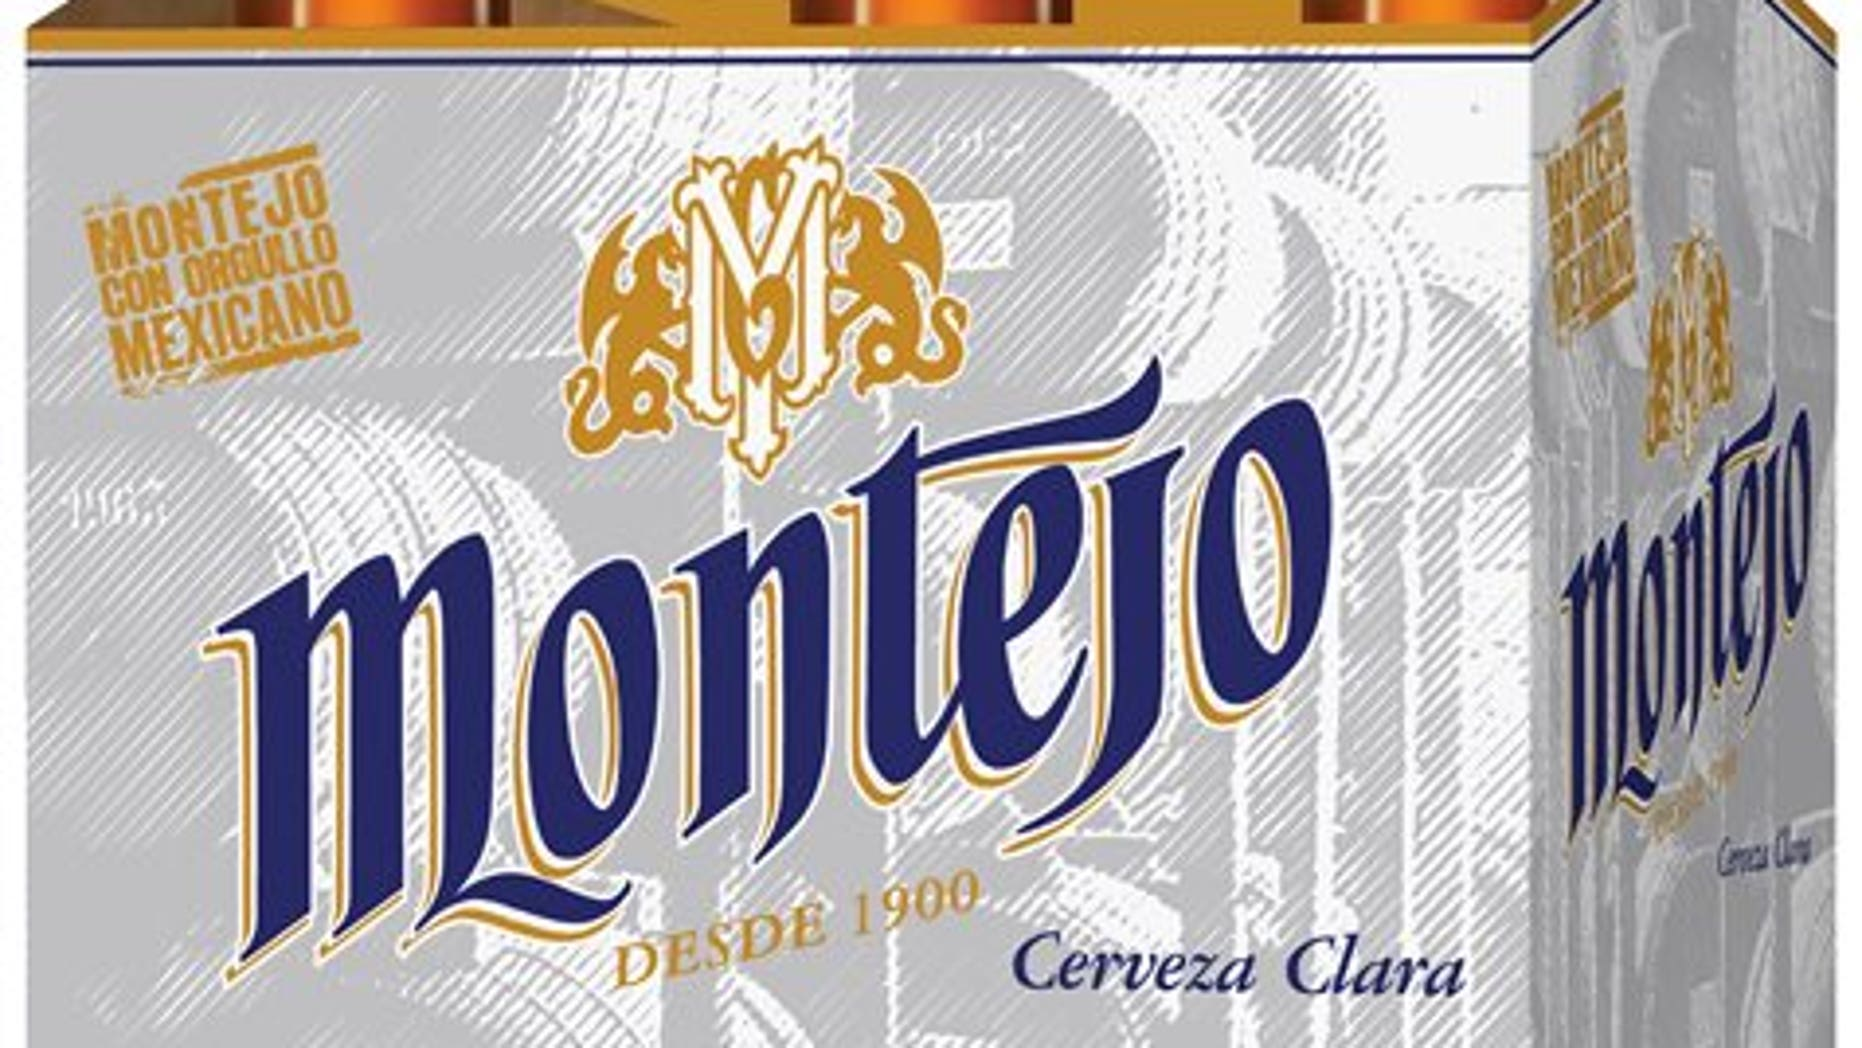 This undated product image provided by Anheuser-Busch shows Montejo. Anheuser-Busch is entering the popular Mexican lager market for the first time with the import of Montejo to Southwestern U.S. markets beginning next month. The subsidiary of Belgium-based Anheuser-Busch InBev, the world's largest beer maker, said Wednesday, Aug. 6, 2014, it will sell the beer in bars, restaurants and grocery stores in California, Texas, Arizona and New Mexico. (AP Photo/Anheuser-Busch)